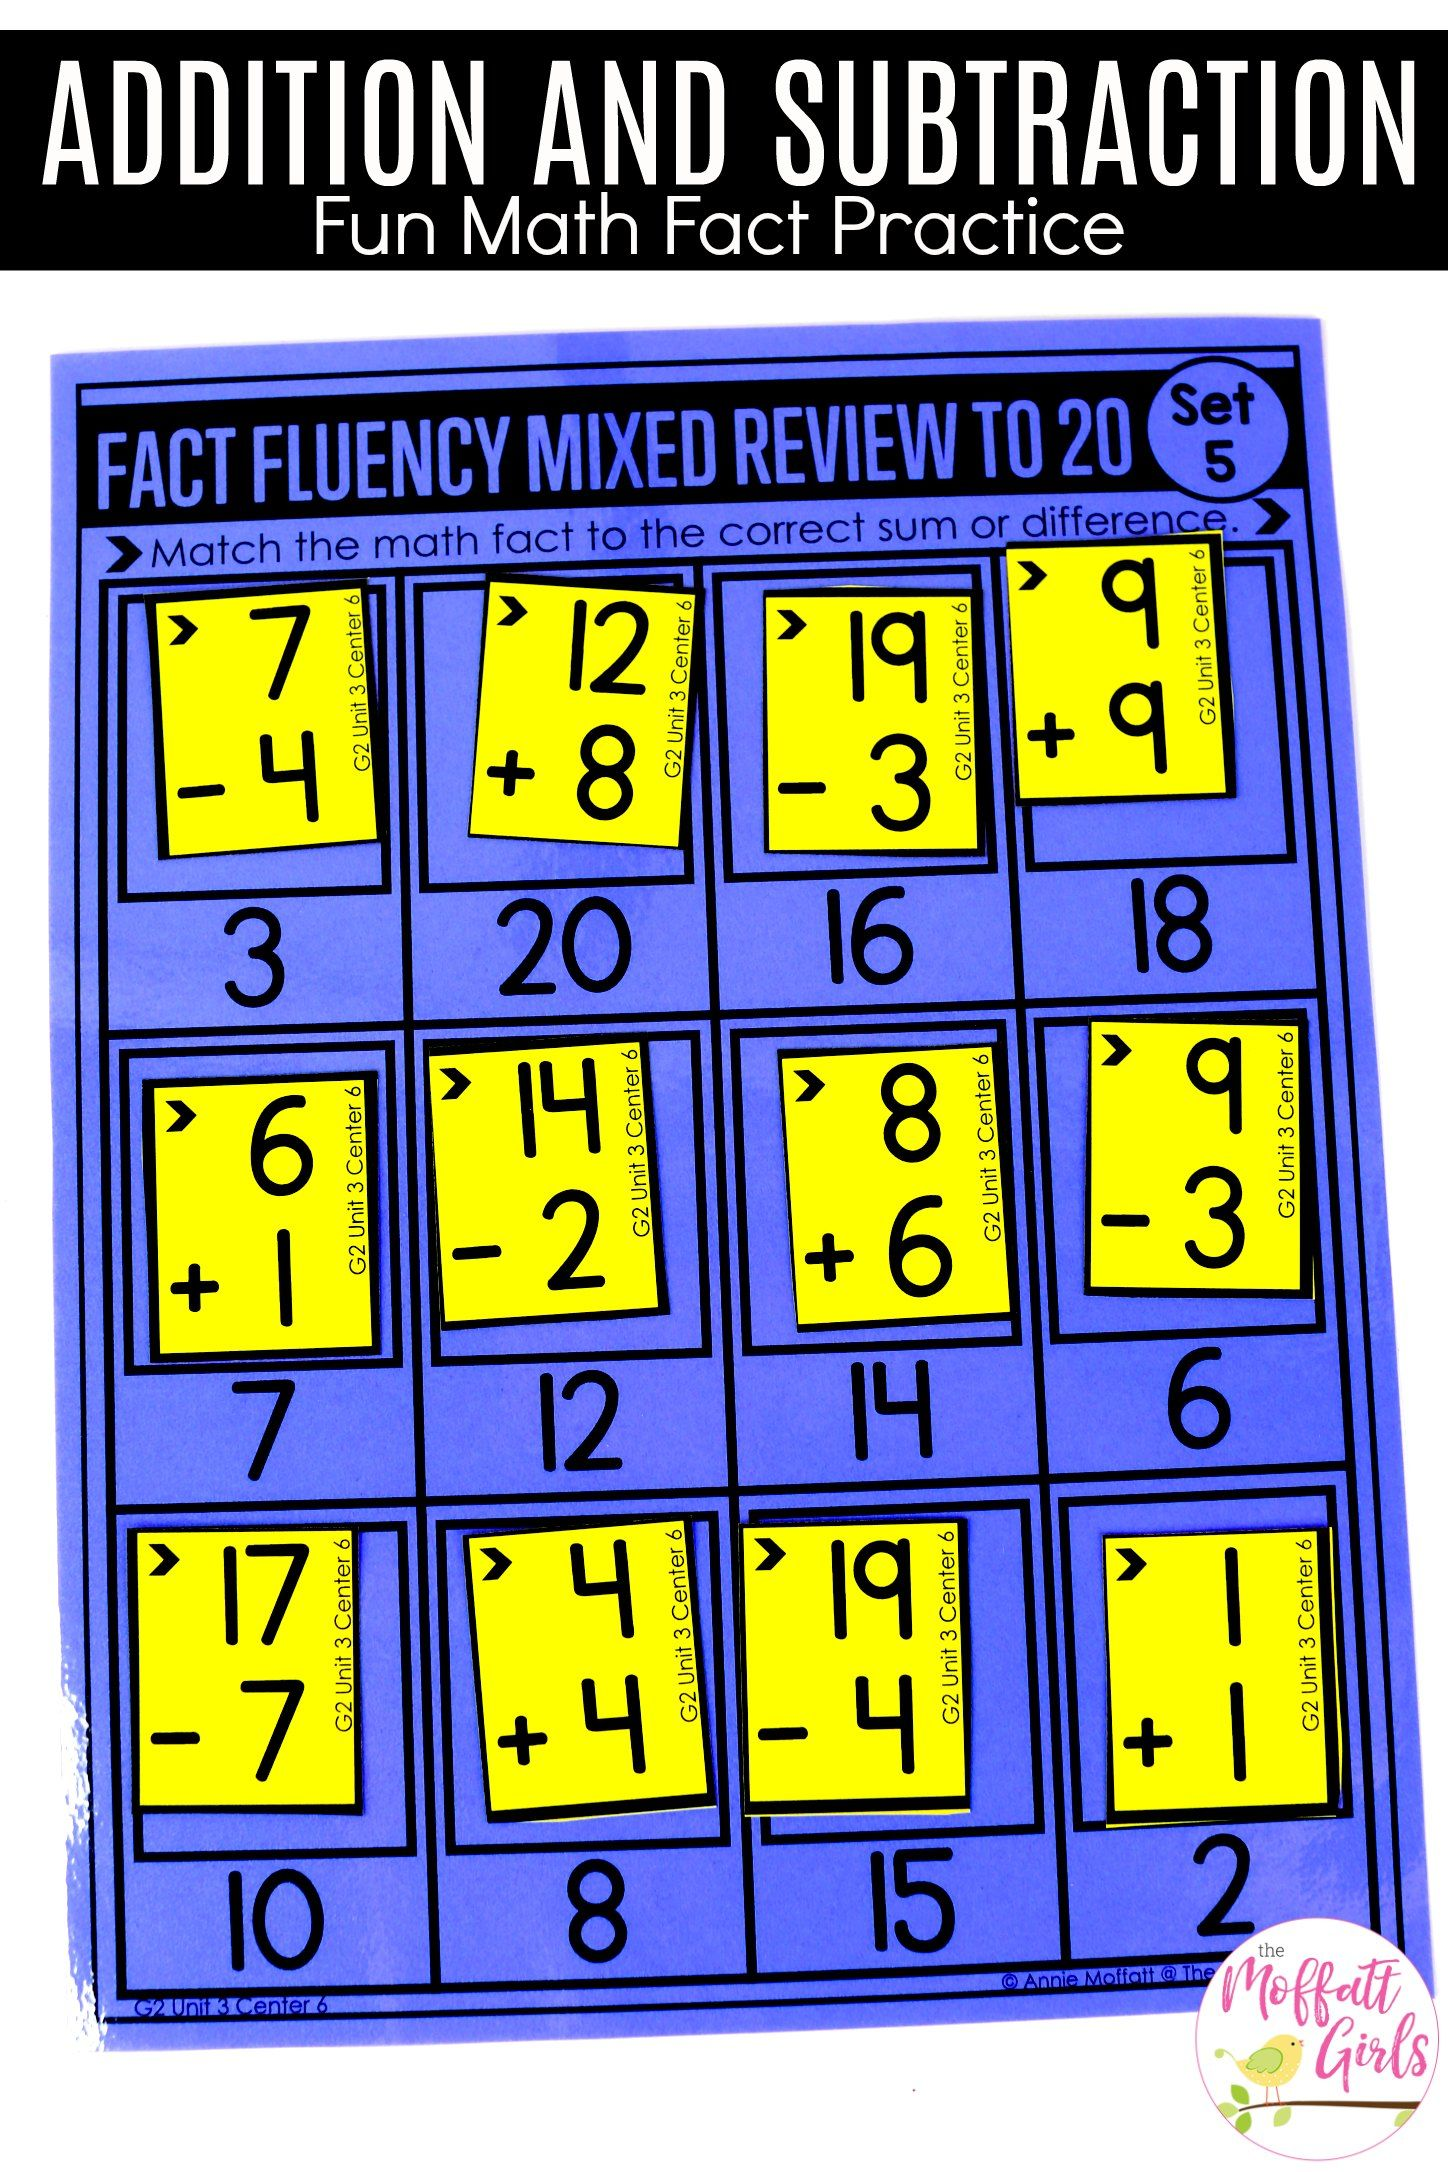 Addition And Subtraction Fluency Up To 100 For 2nd Grade Addition And Subtraction Math Fact Practice Subtraction [ 2172 x 1448 Pixel ]